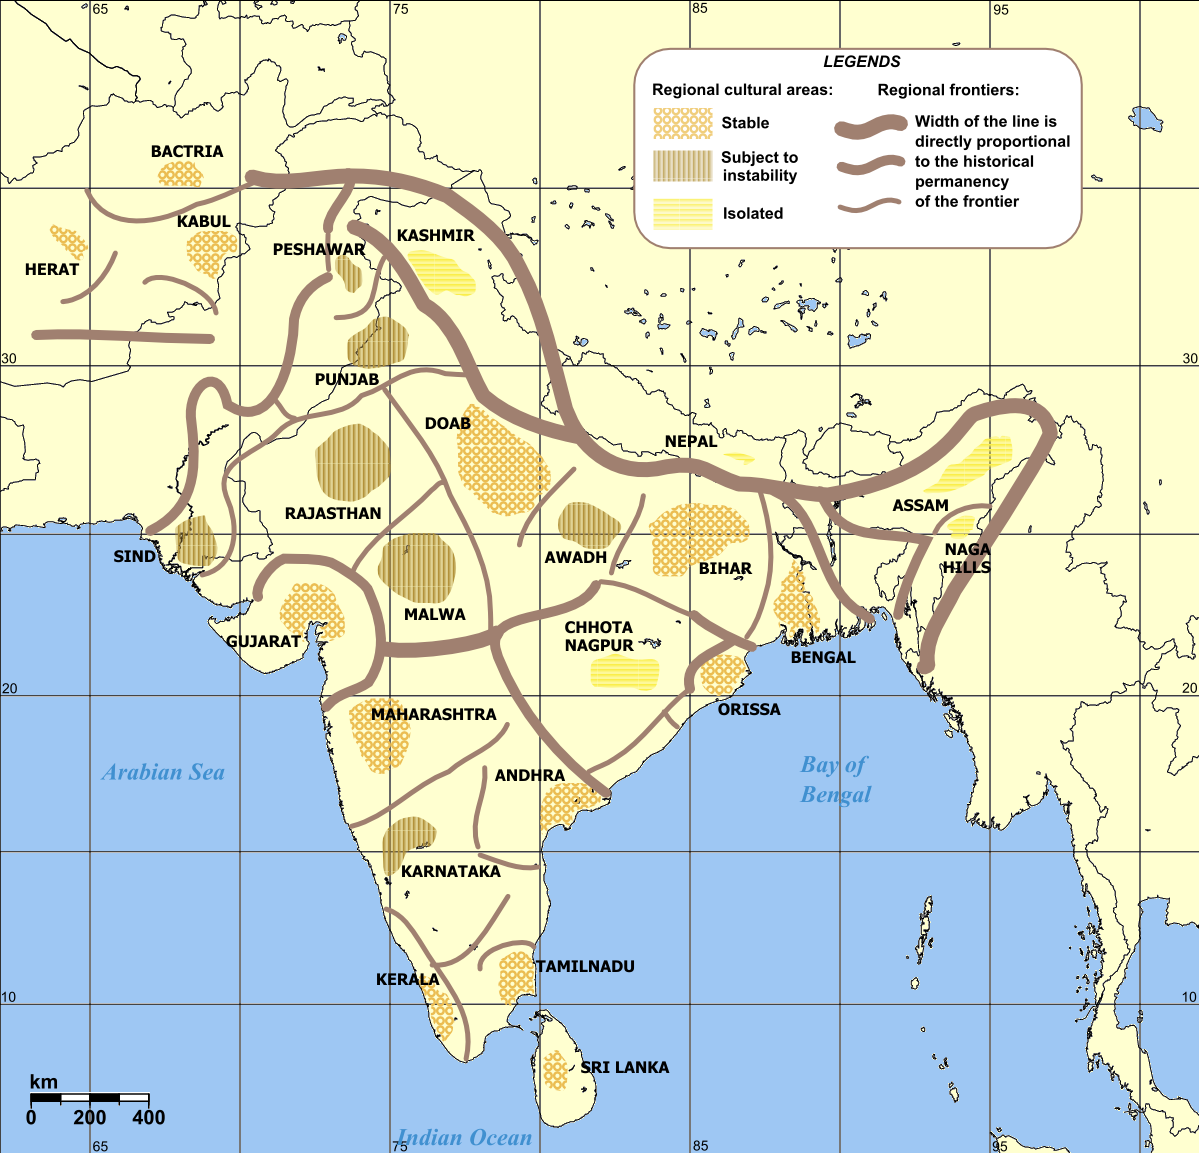 Cultural regional areas of india maps pinterest regional history of indian dynasties starting with the indus river valley and continuing through the modern indian democracy great for ap world history course and gumiabroncs Gallery